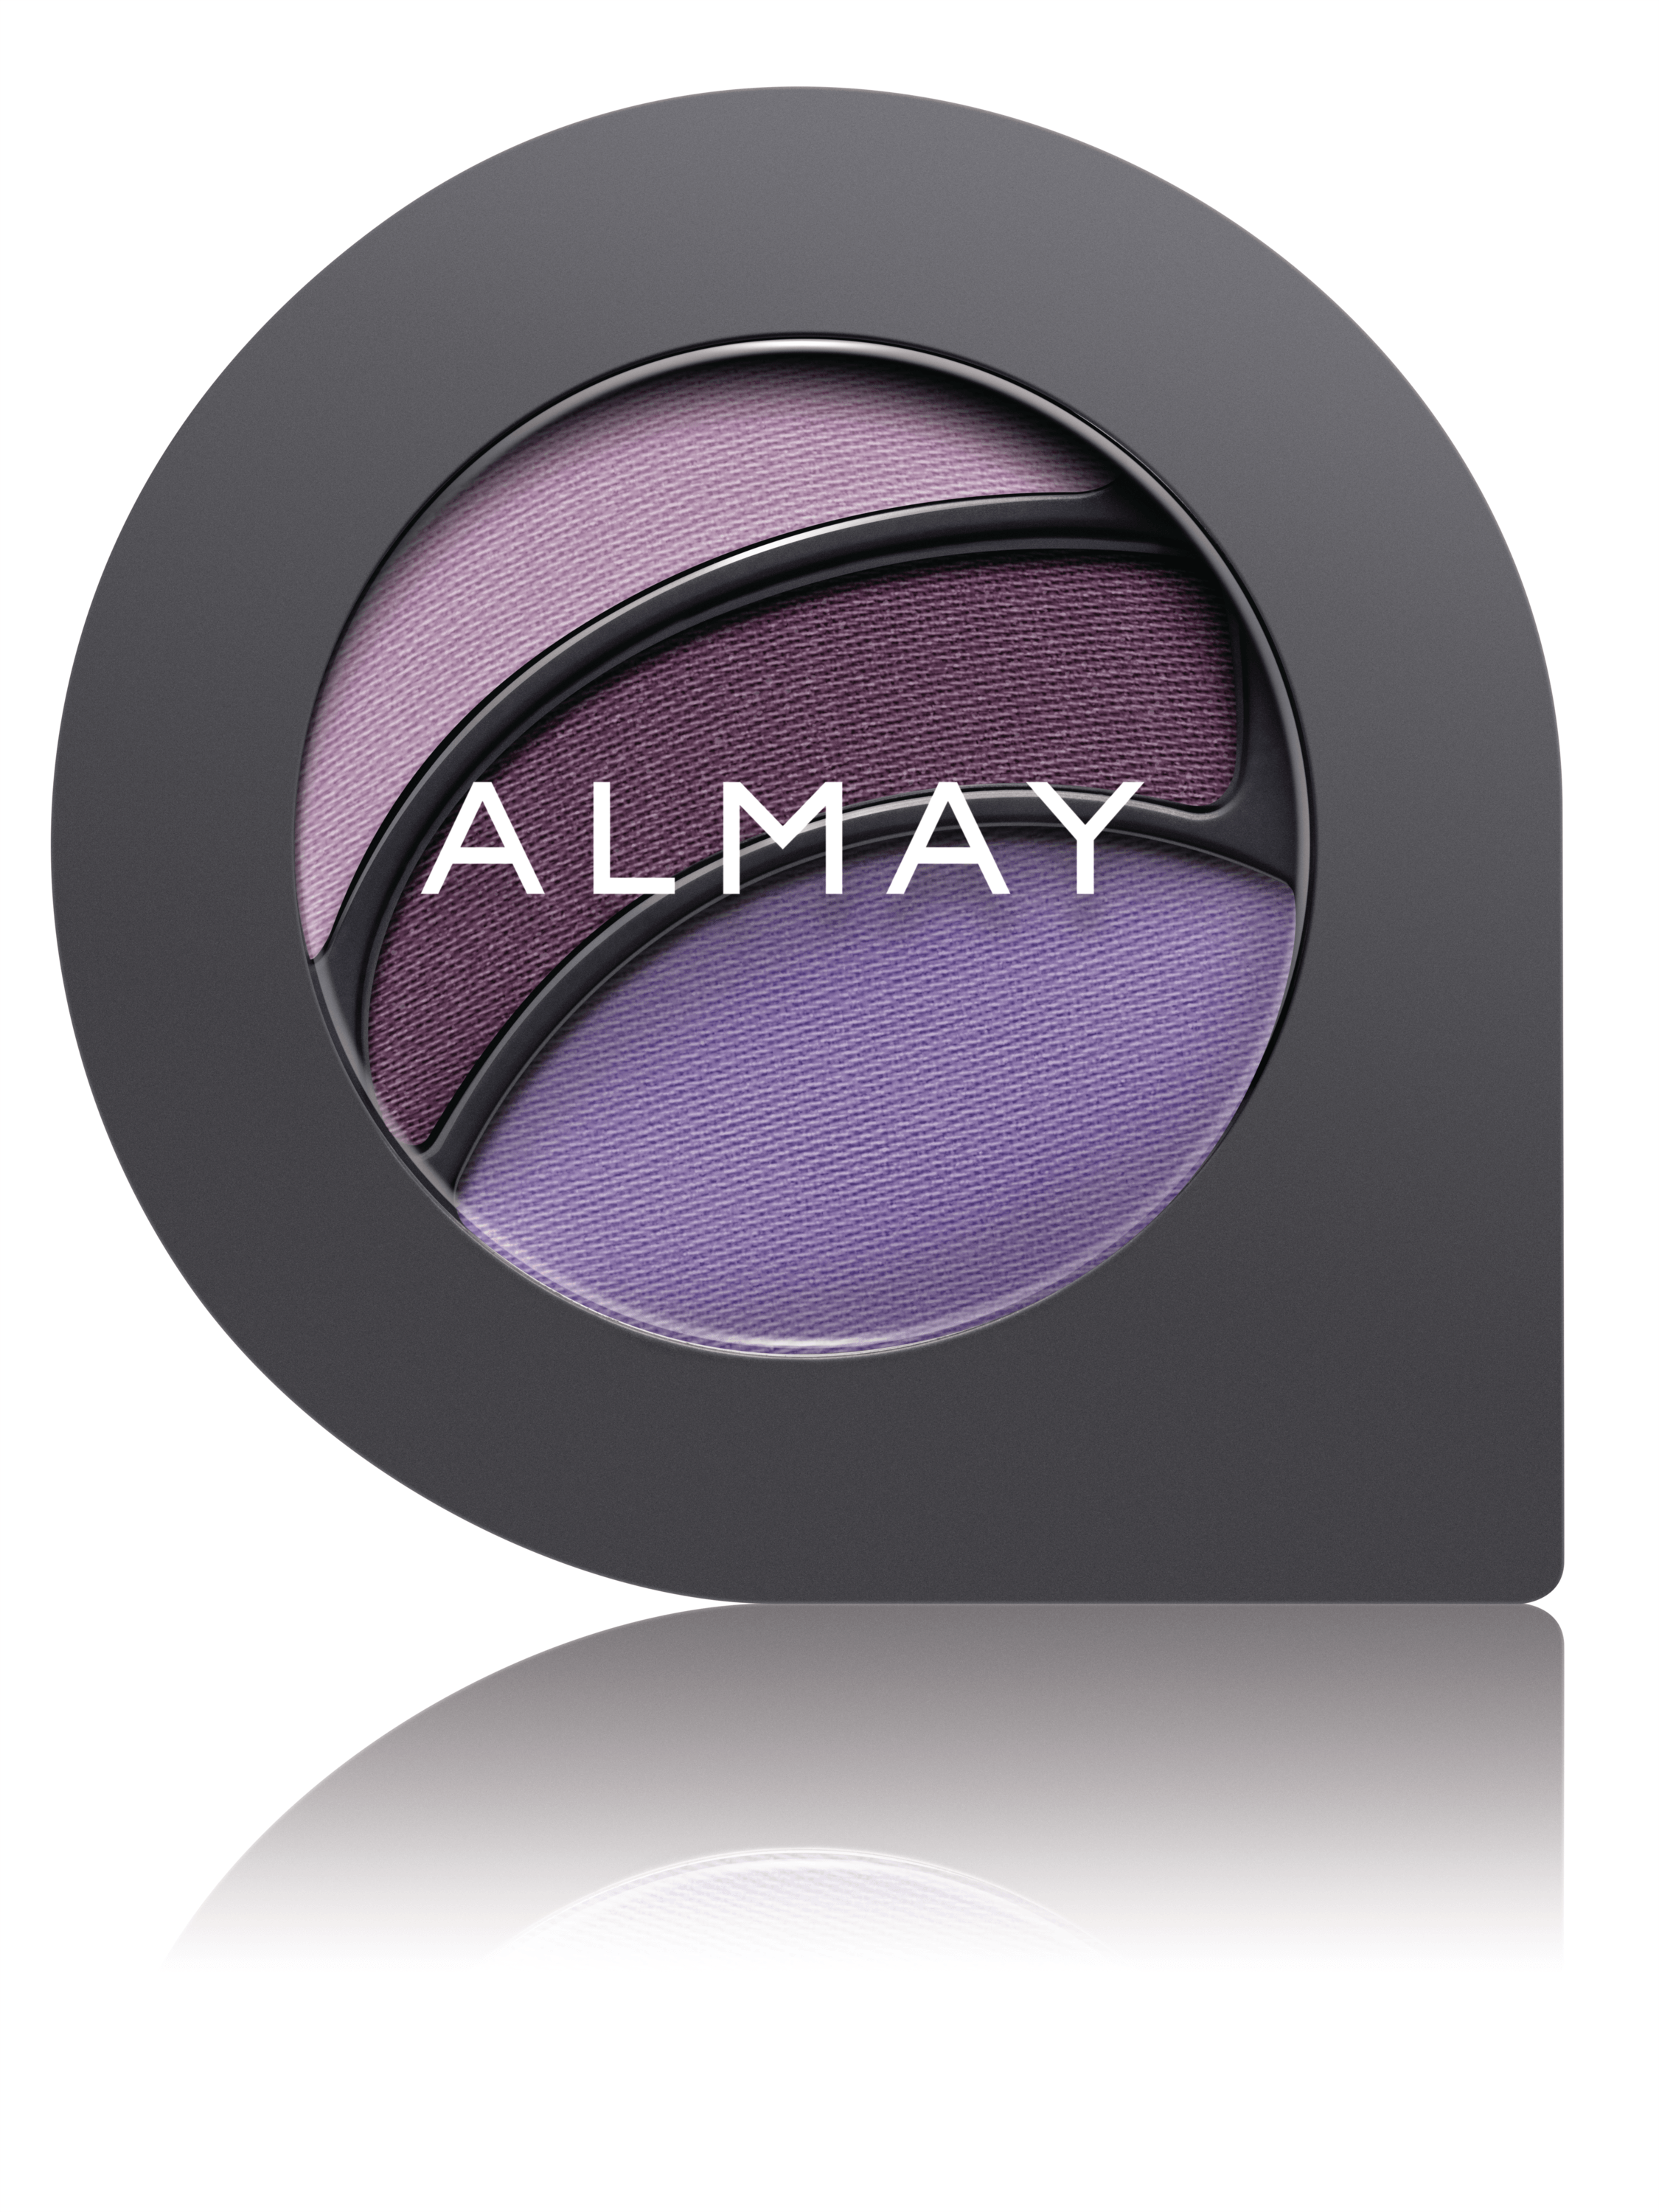 almay intense i-color party brights all day wear powder eye shadow, 0.2 oz,  for hazel eyes